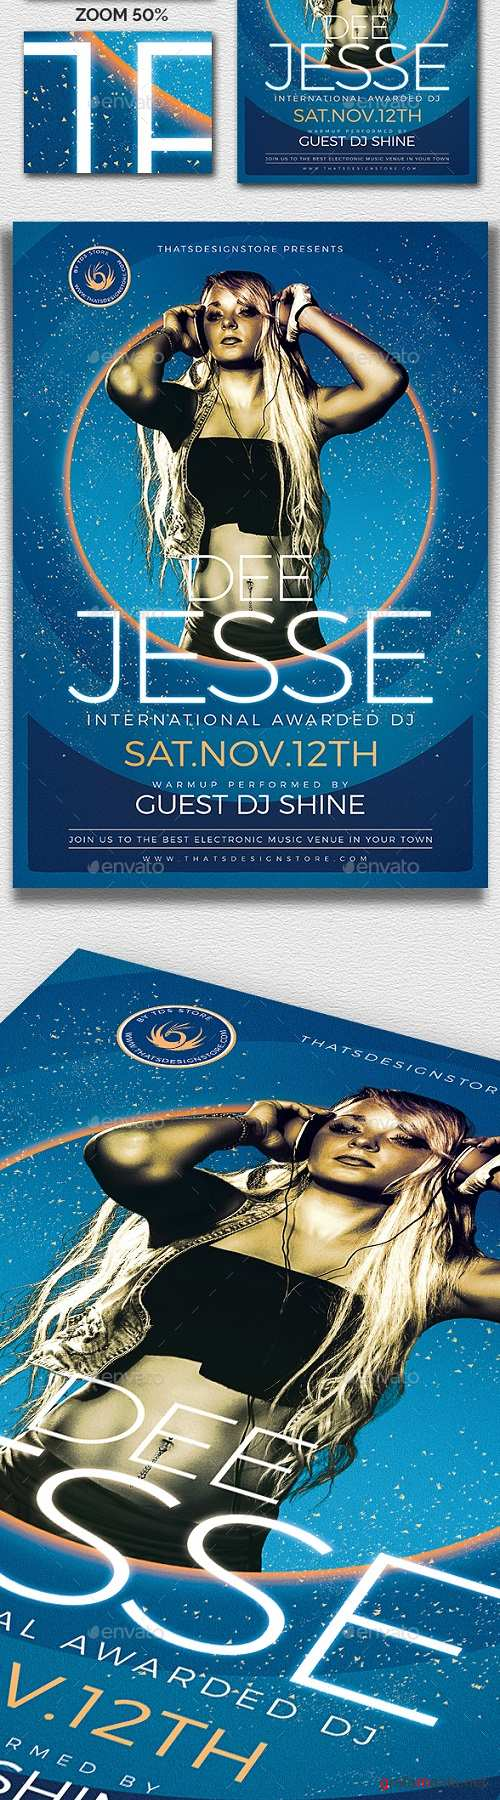 DJ Session Flyer Template V6 21039603 - 2088337